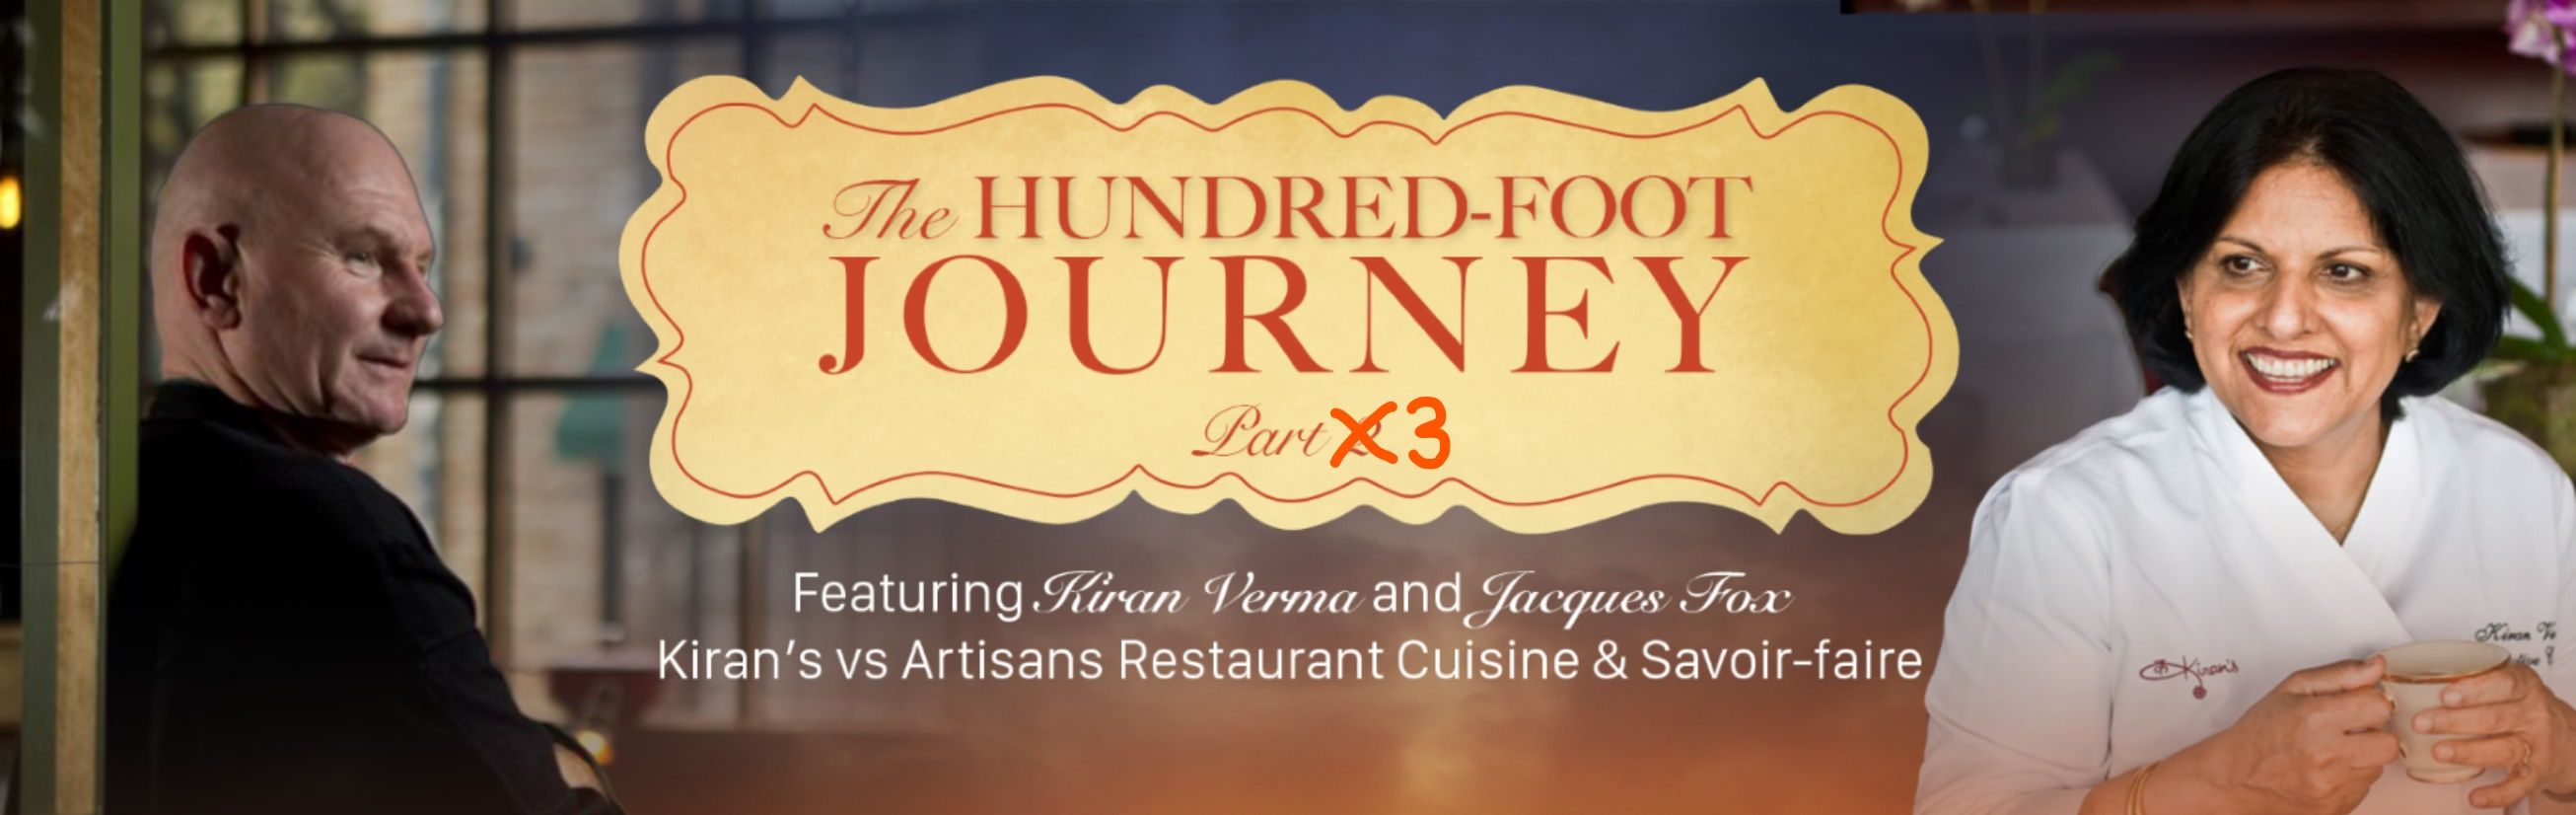 InkedHundred Foot Journey Picture-Chef Kiran and Chef Jacques_LI.jpg